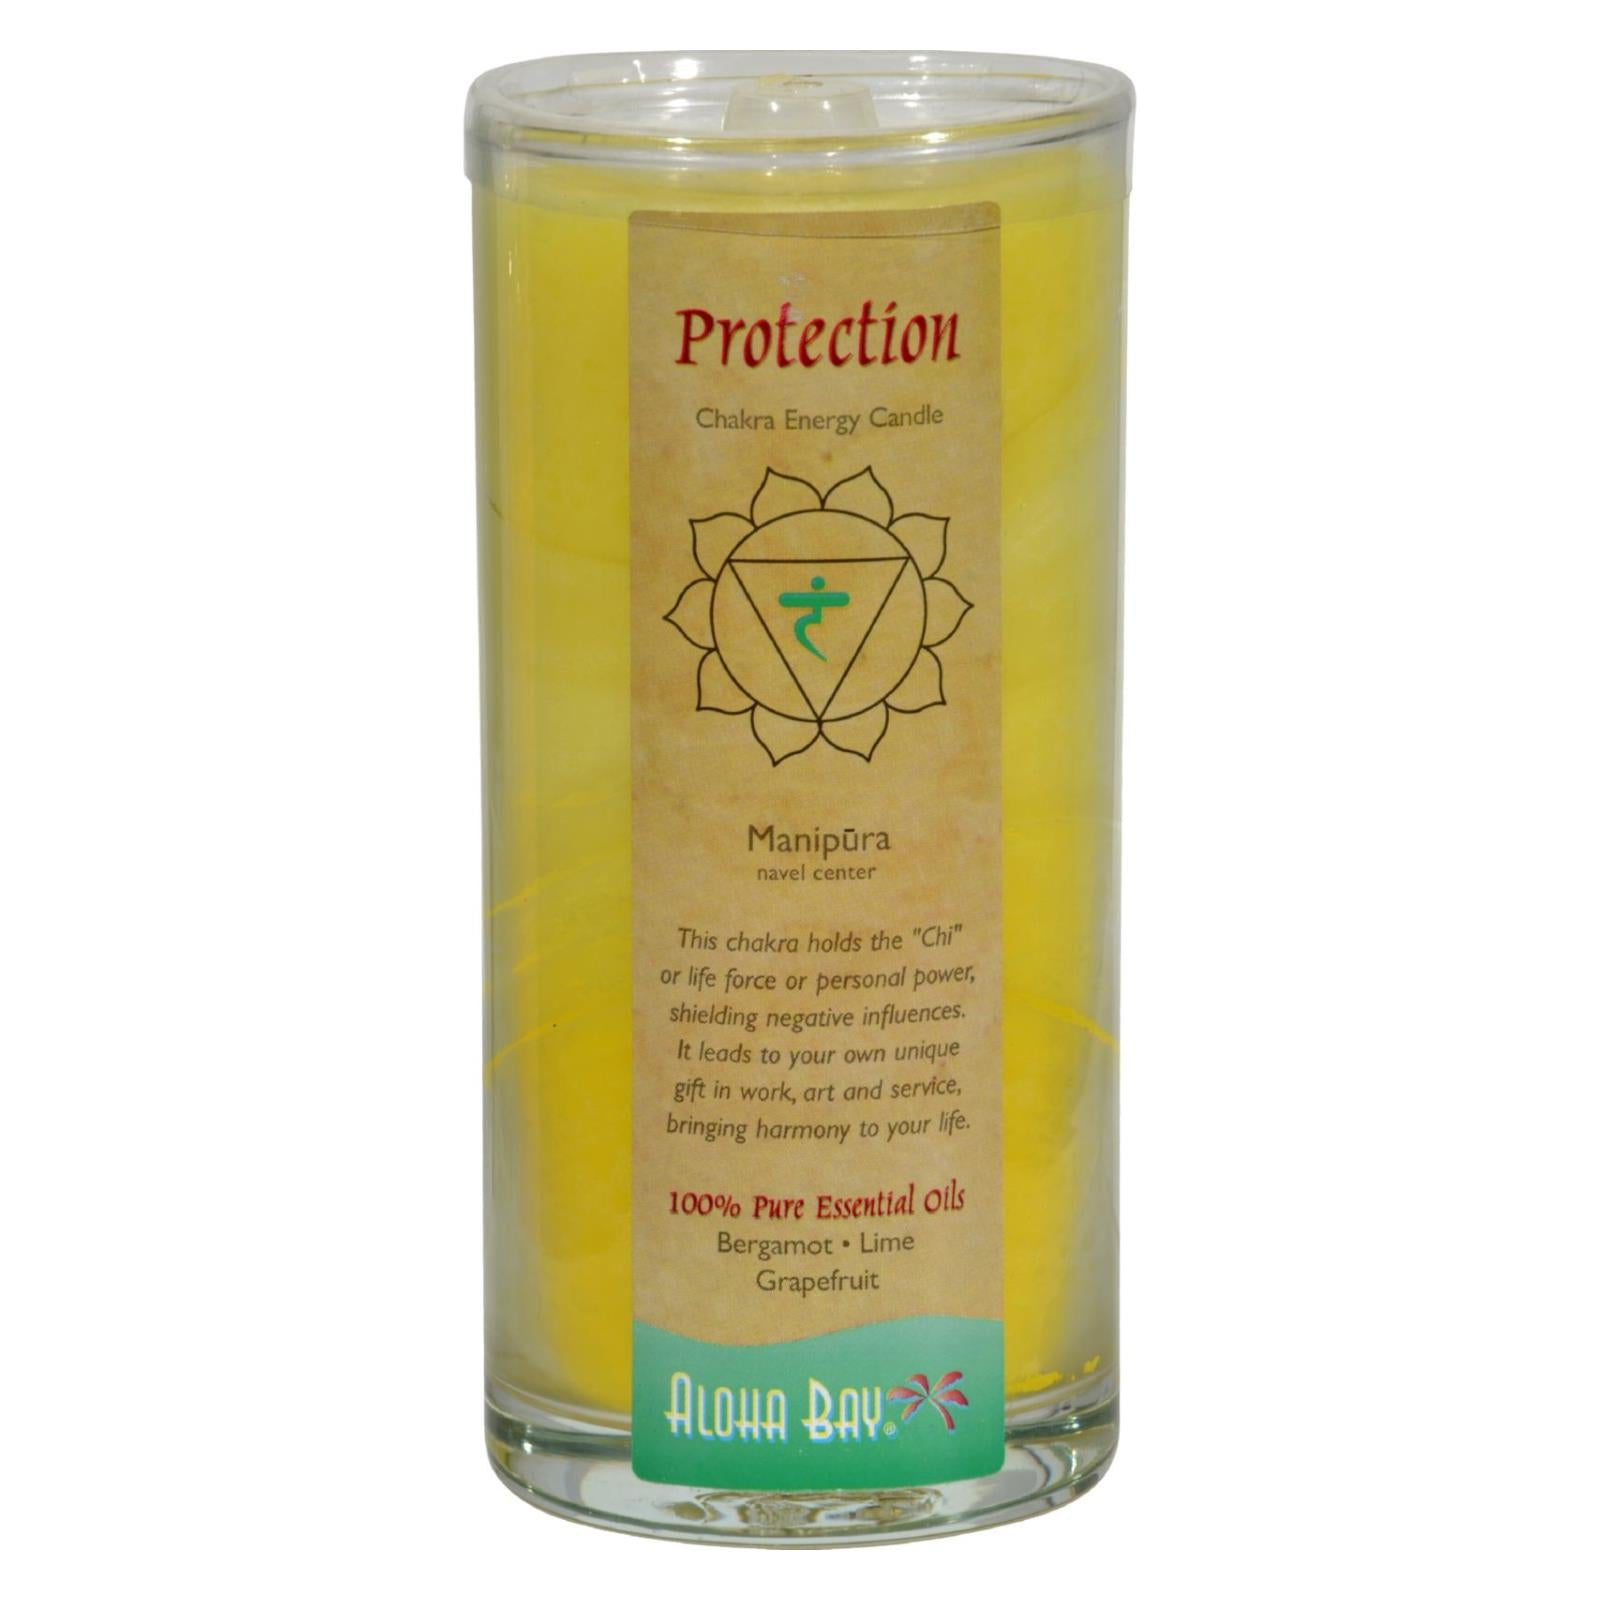 Buy Aloha Bay Chakra Candle Jar Protection - 11 oz - Jar Candles from Veroeco.com